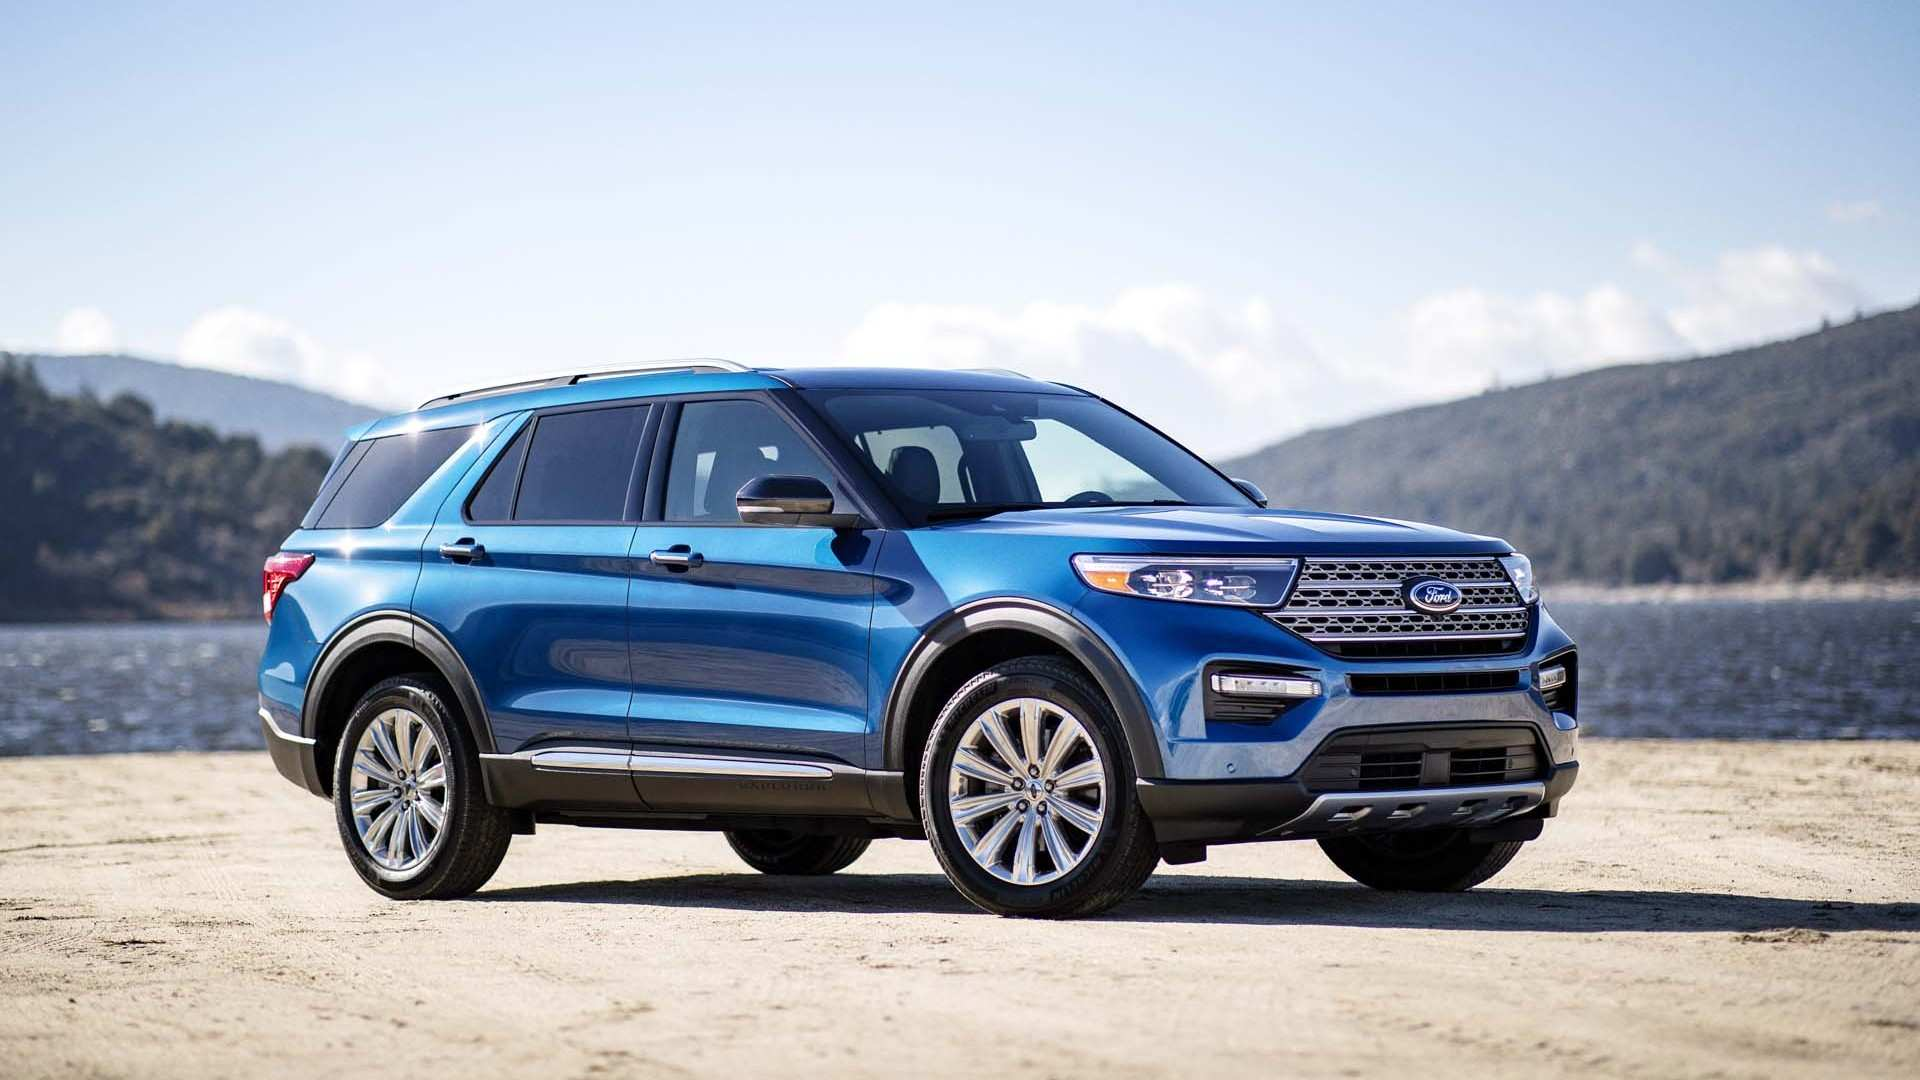 64 Great Ford Explorer 2020 Release Date Spesification by Ford Explorer 2020 Release Date